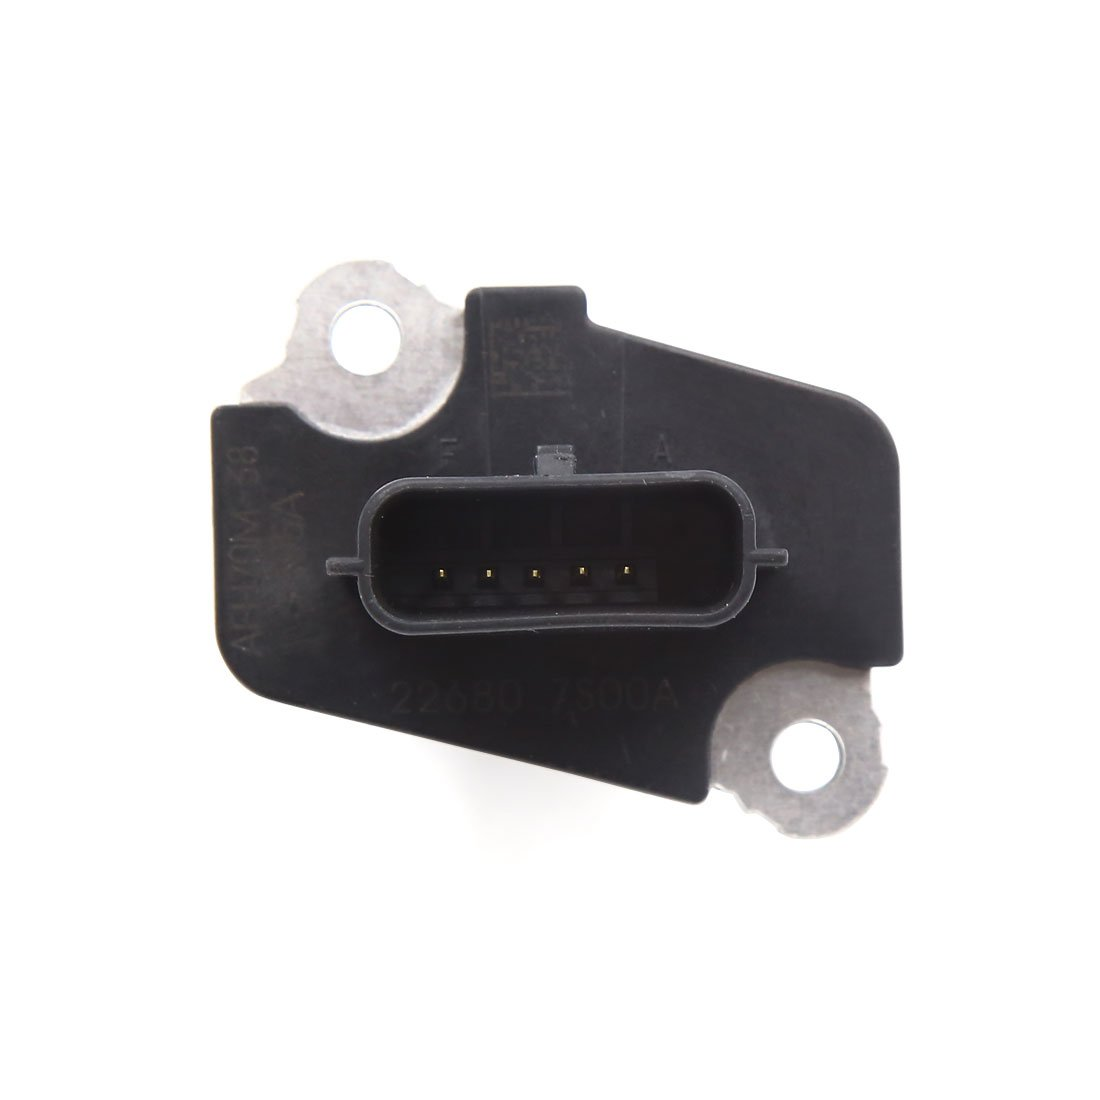 Uxcell a18031900ux0462 Air Flow Sensor